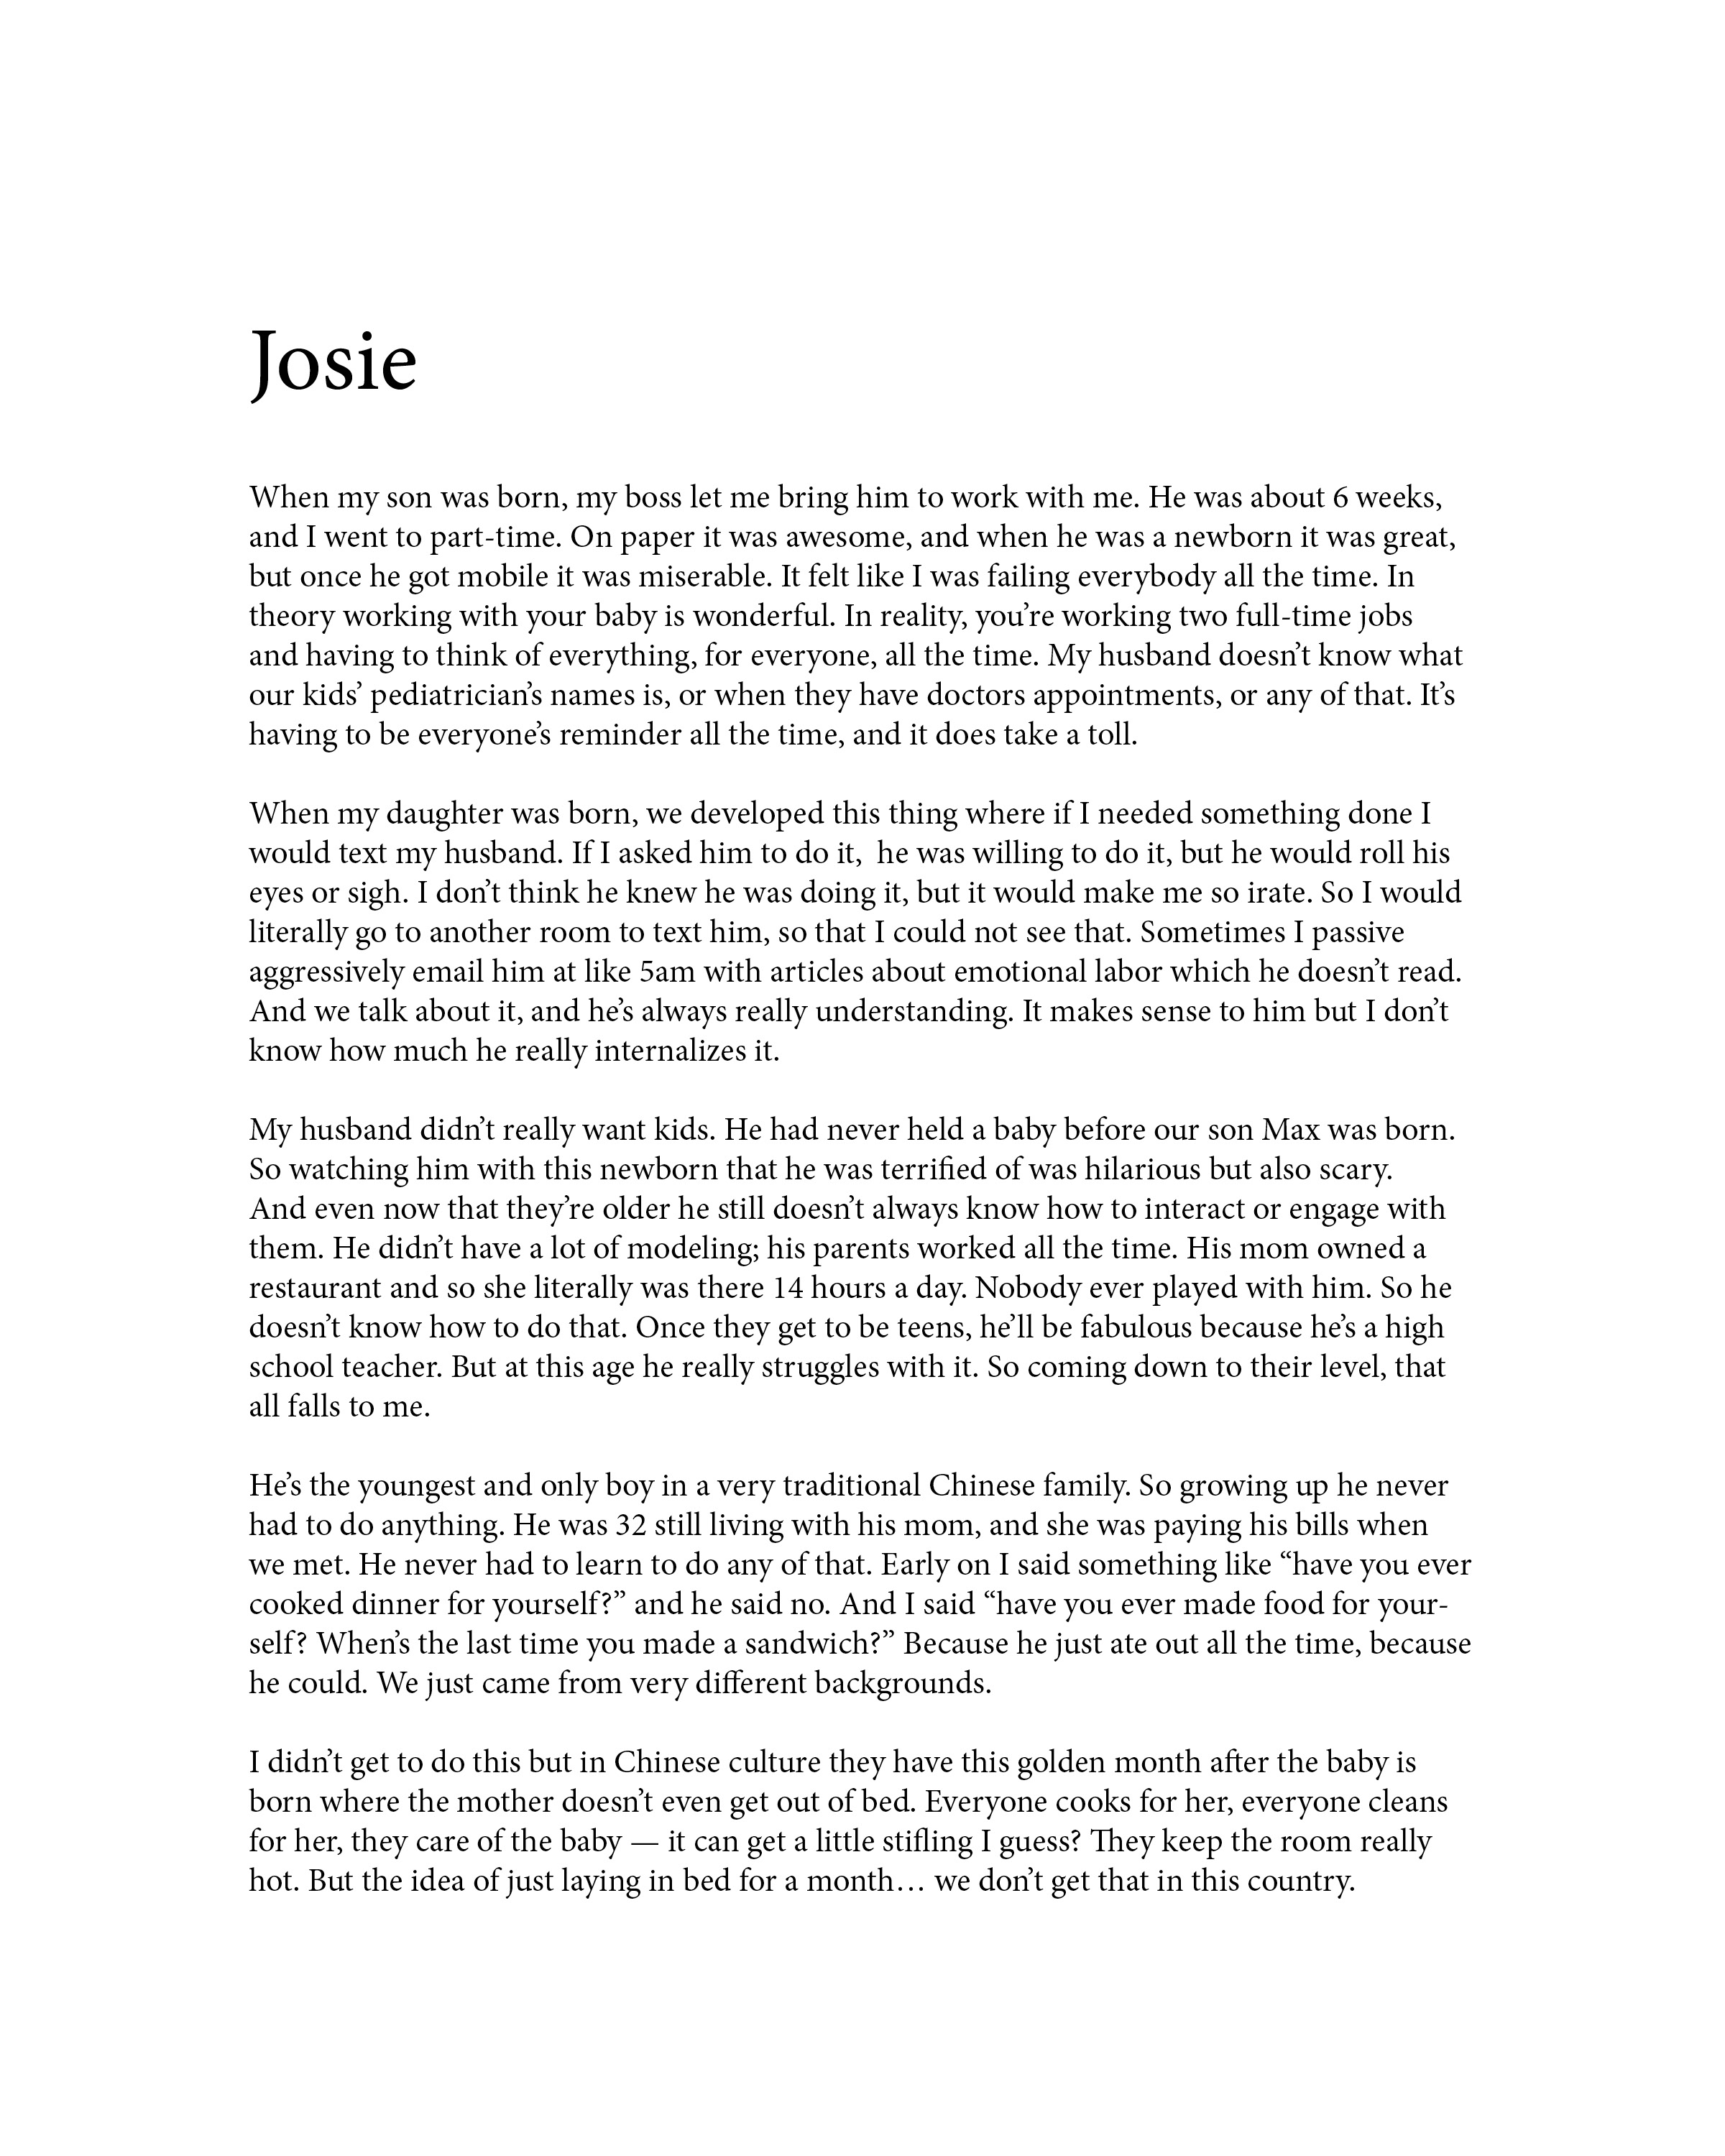 Josie Interview.jpg